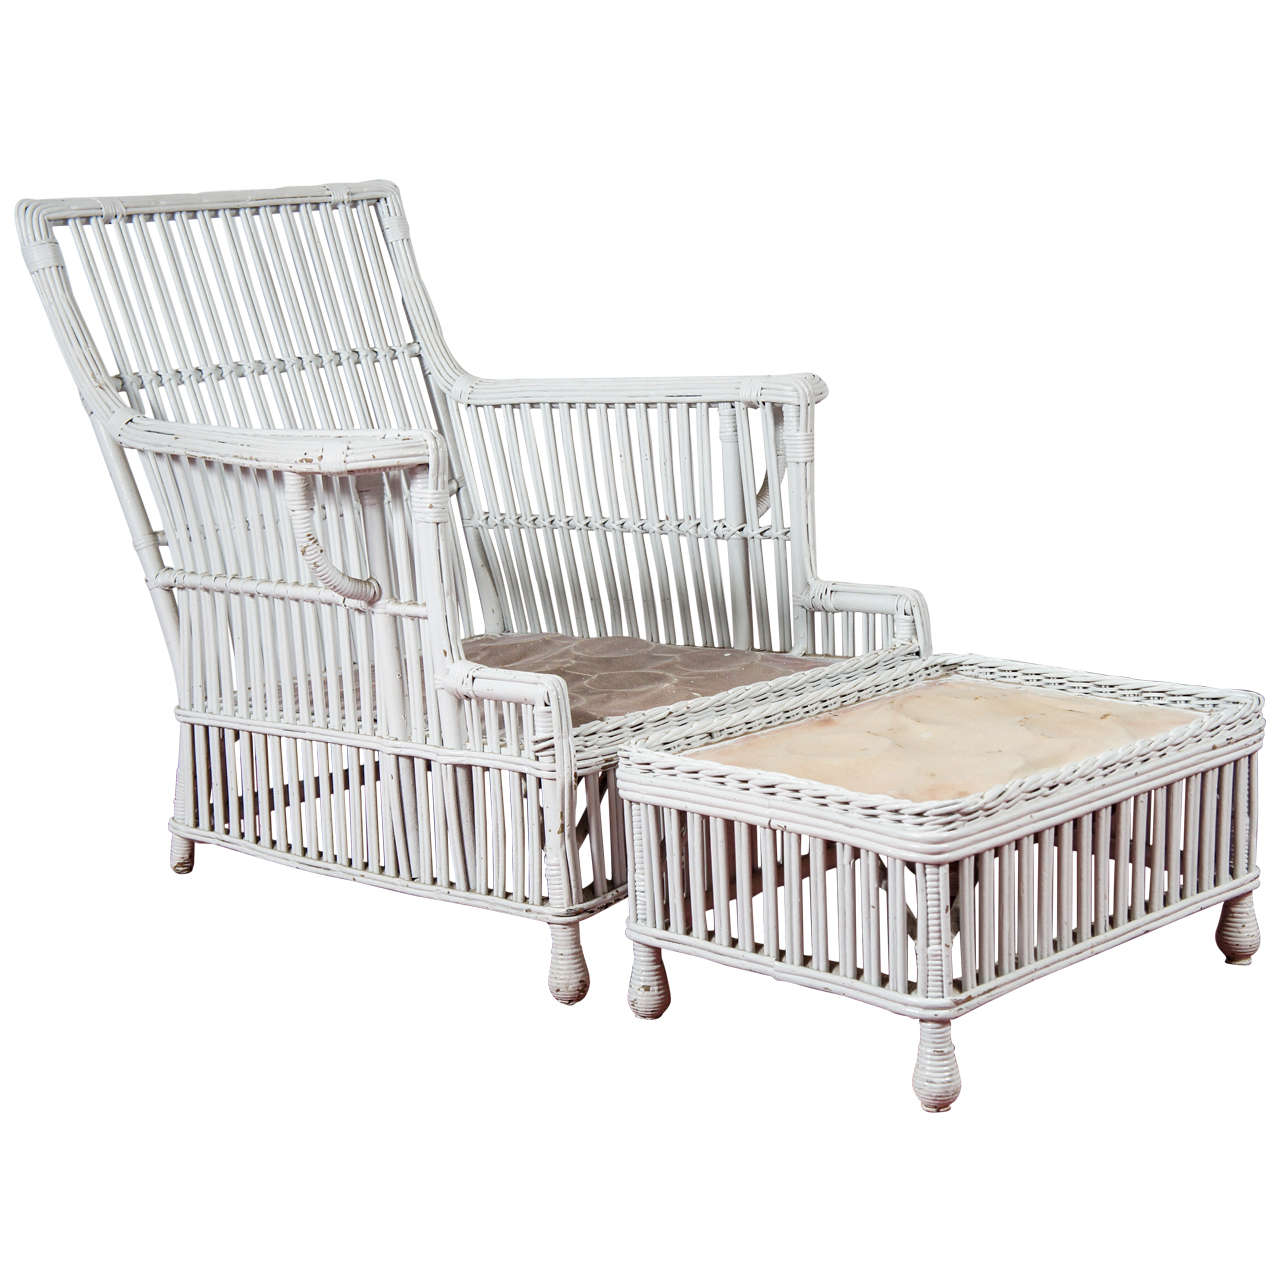 Stick wicker rattan arm chair and matching stool at 1stdibs for Matching arm chairs